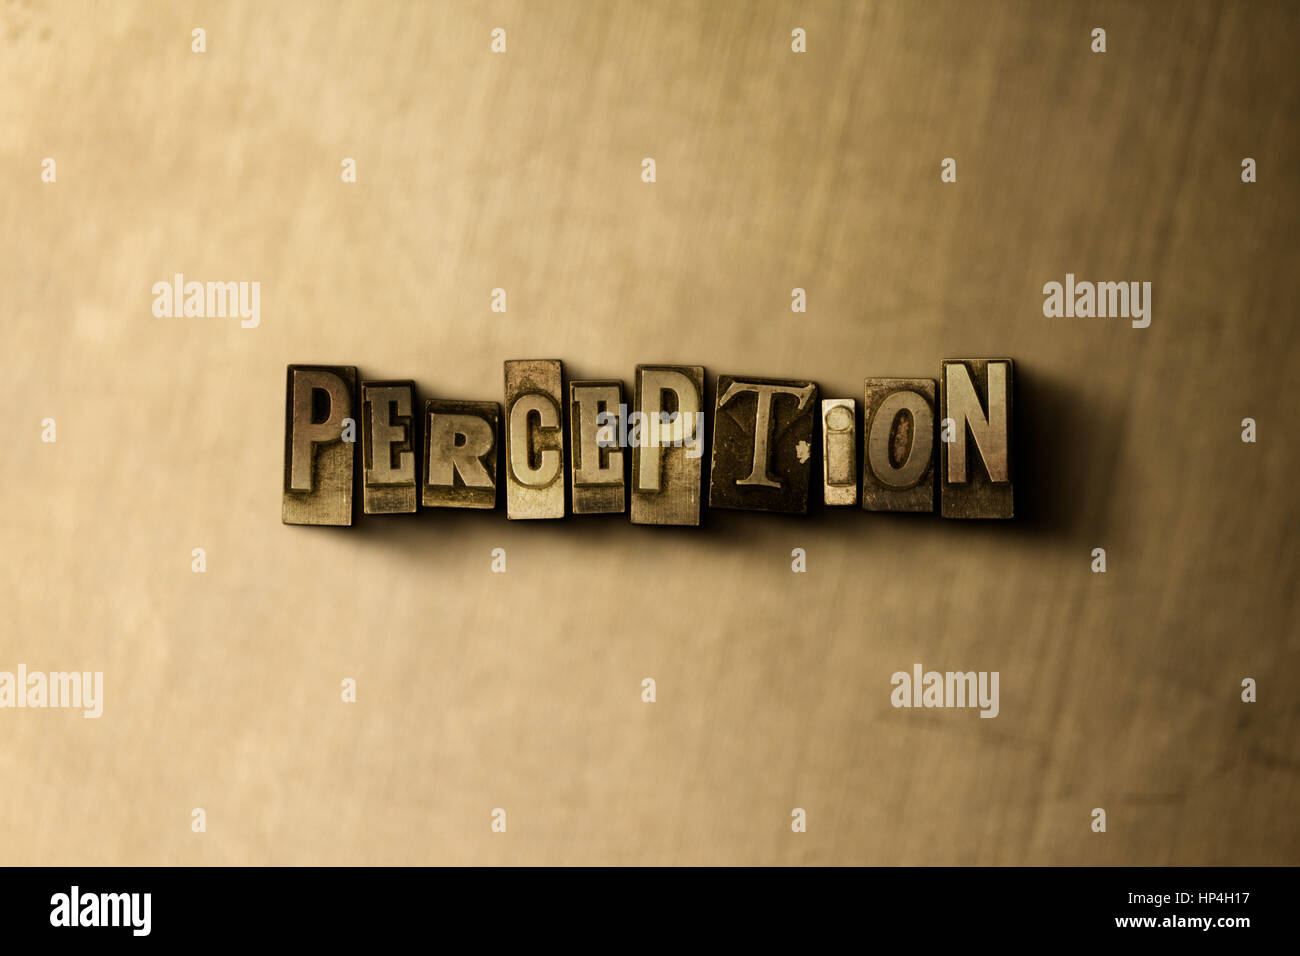 PERCEPTION - close-up of grungy vintage typeset word on metal backdrop. Royalty free stock illustration.  Can be - Stock Image